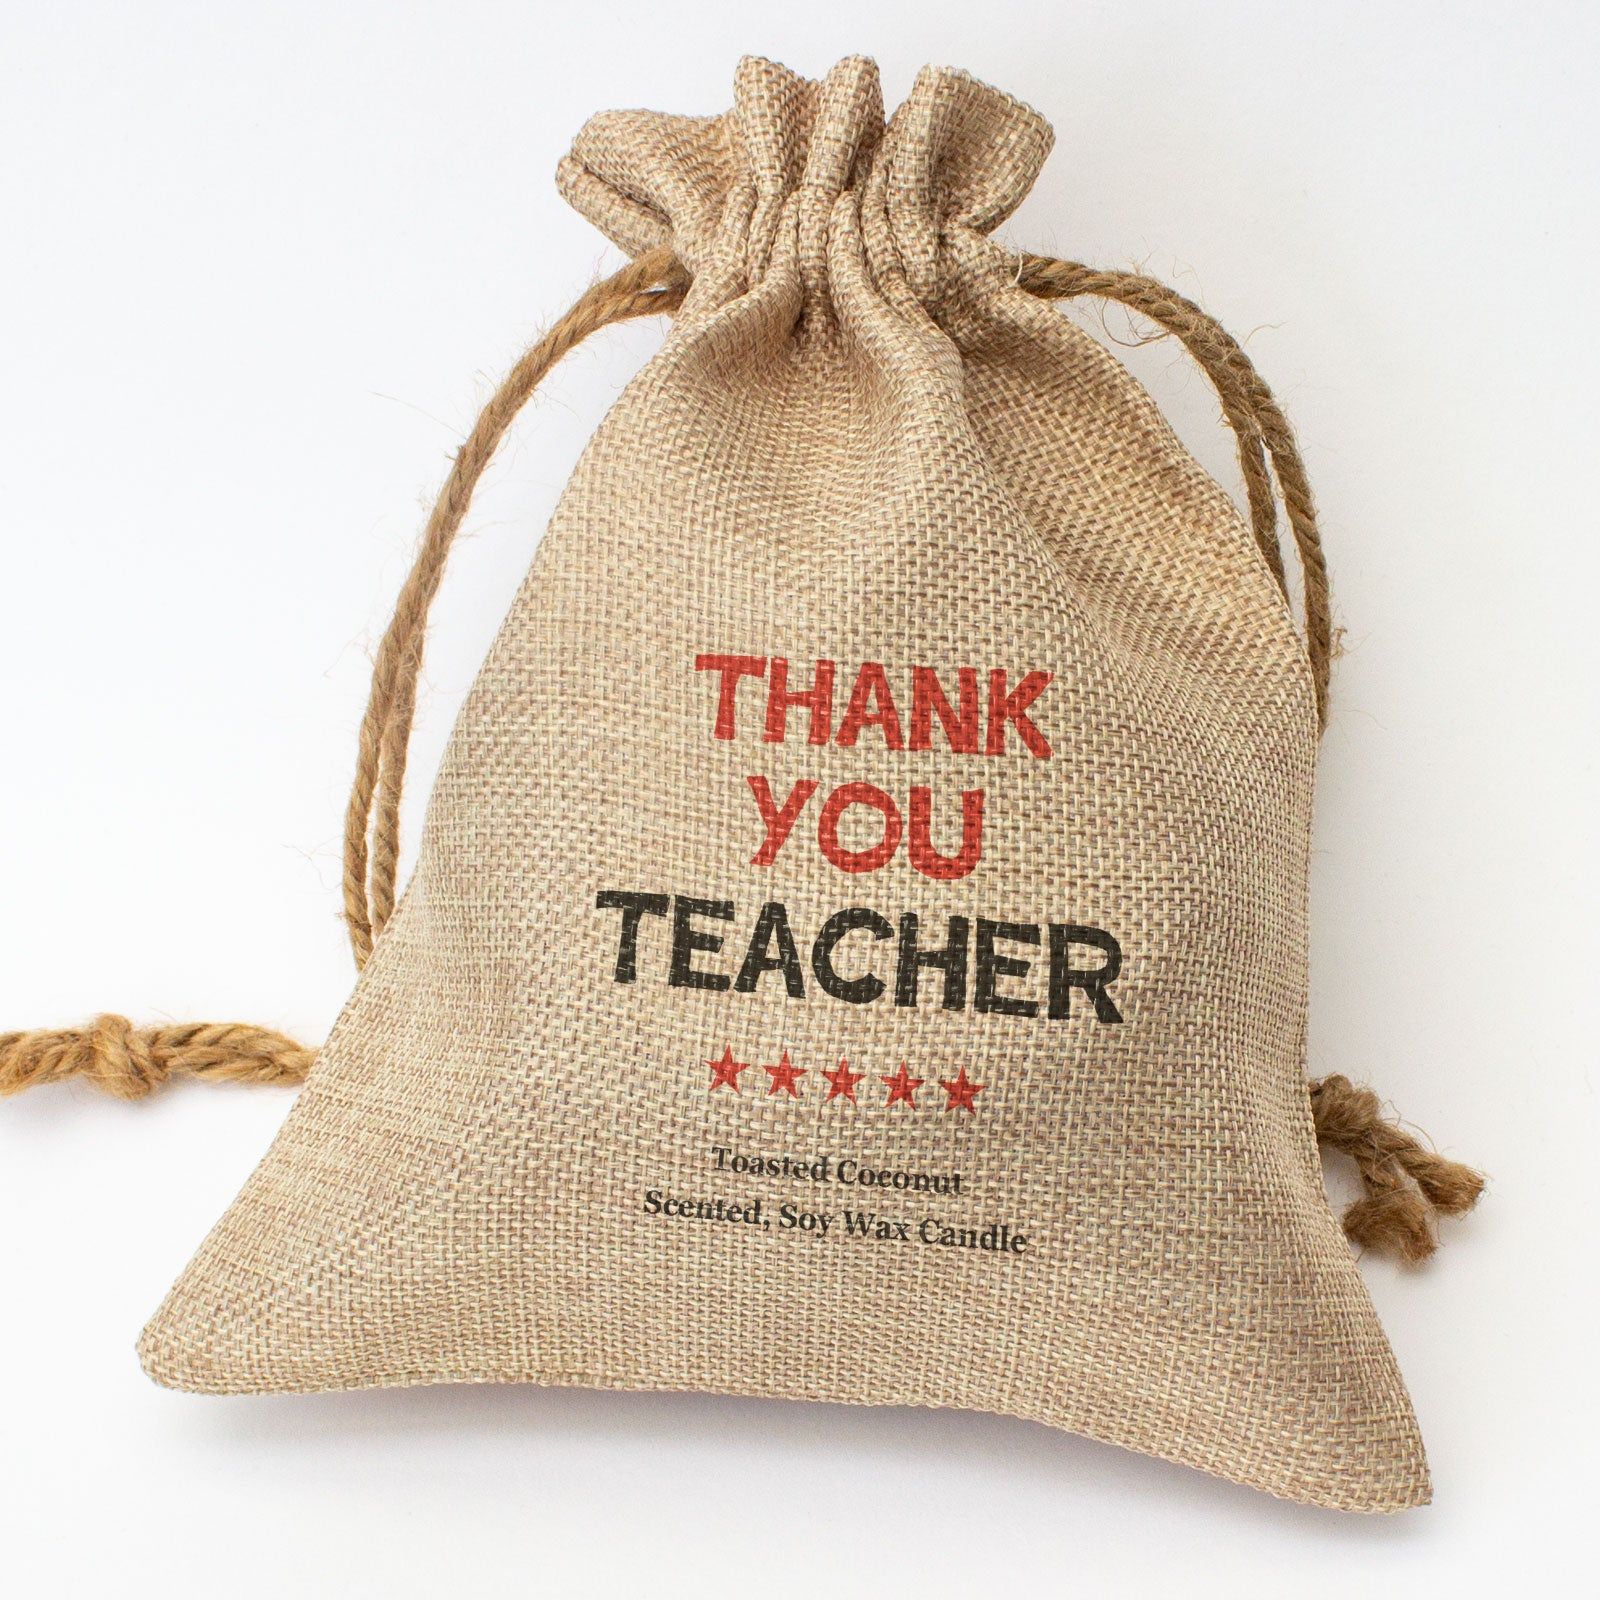 THANK YOU TEACHER - Toasted Coconut Bowl Candle – Soy Wax - Gift Present